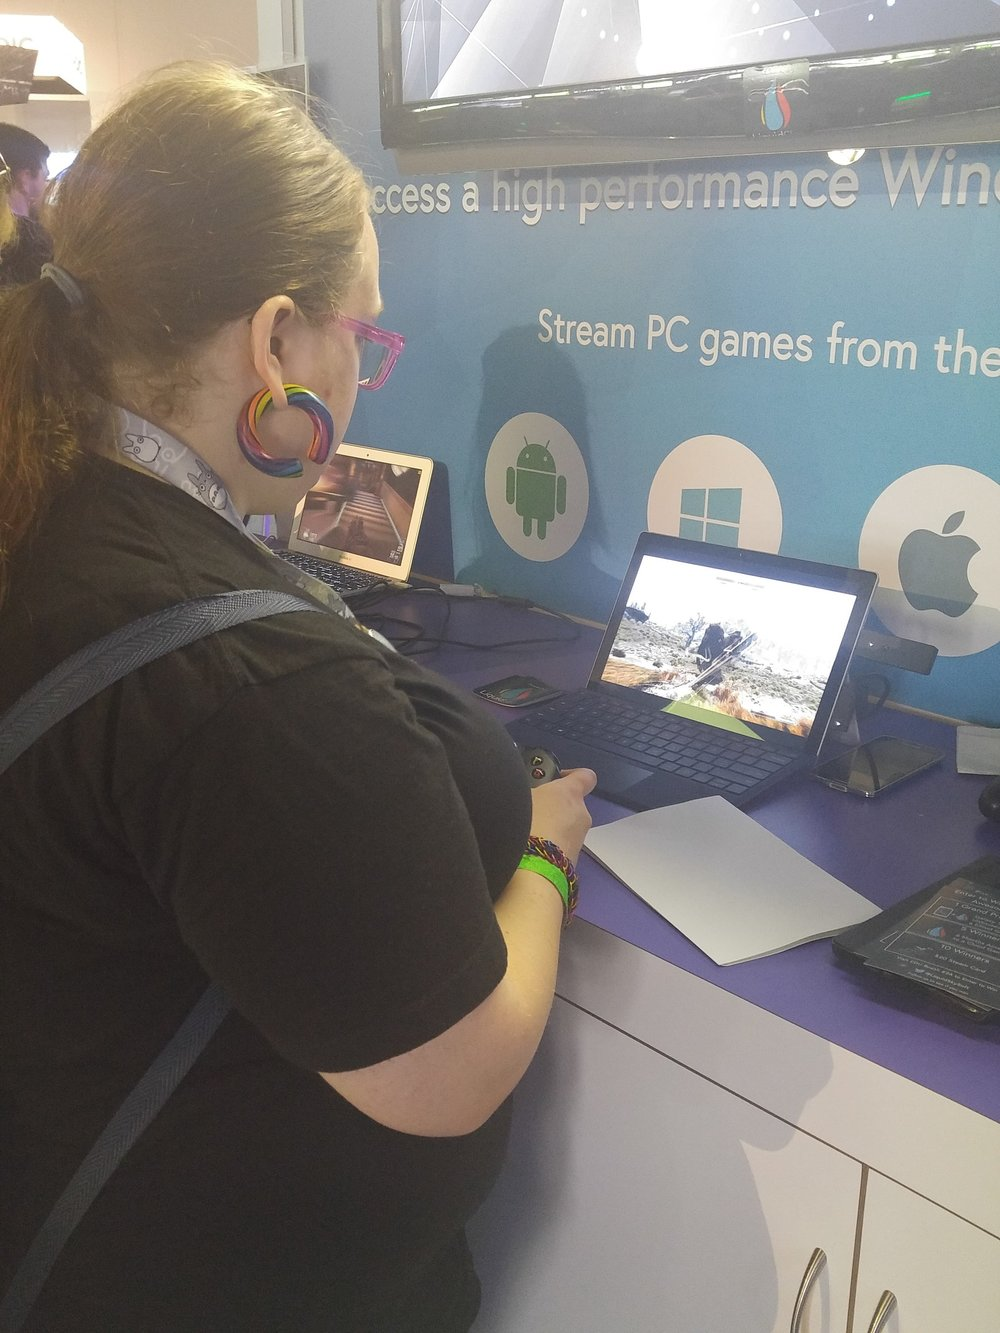 Tons of Demos throughout the Con. Here is Fwatair getting sucked into Skyrim.